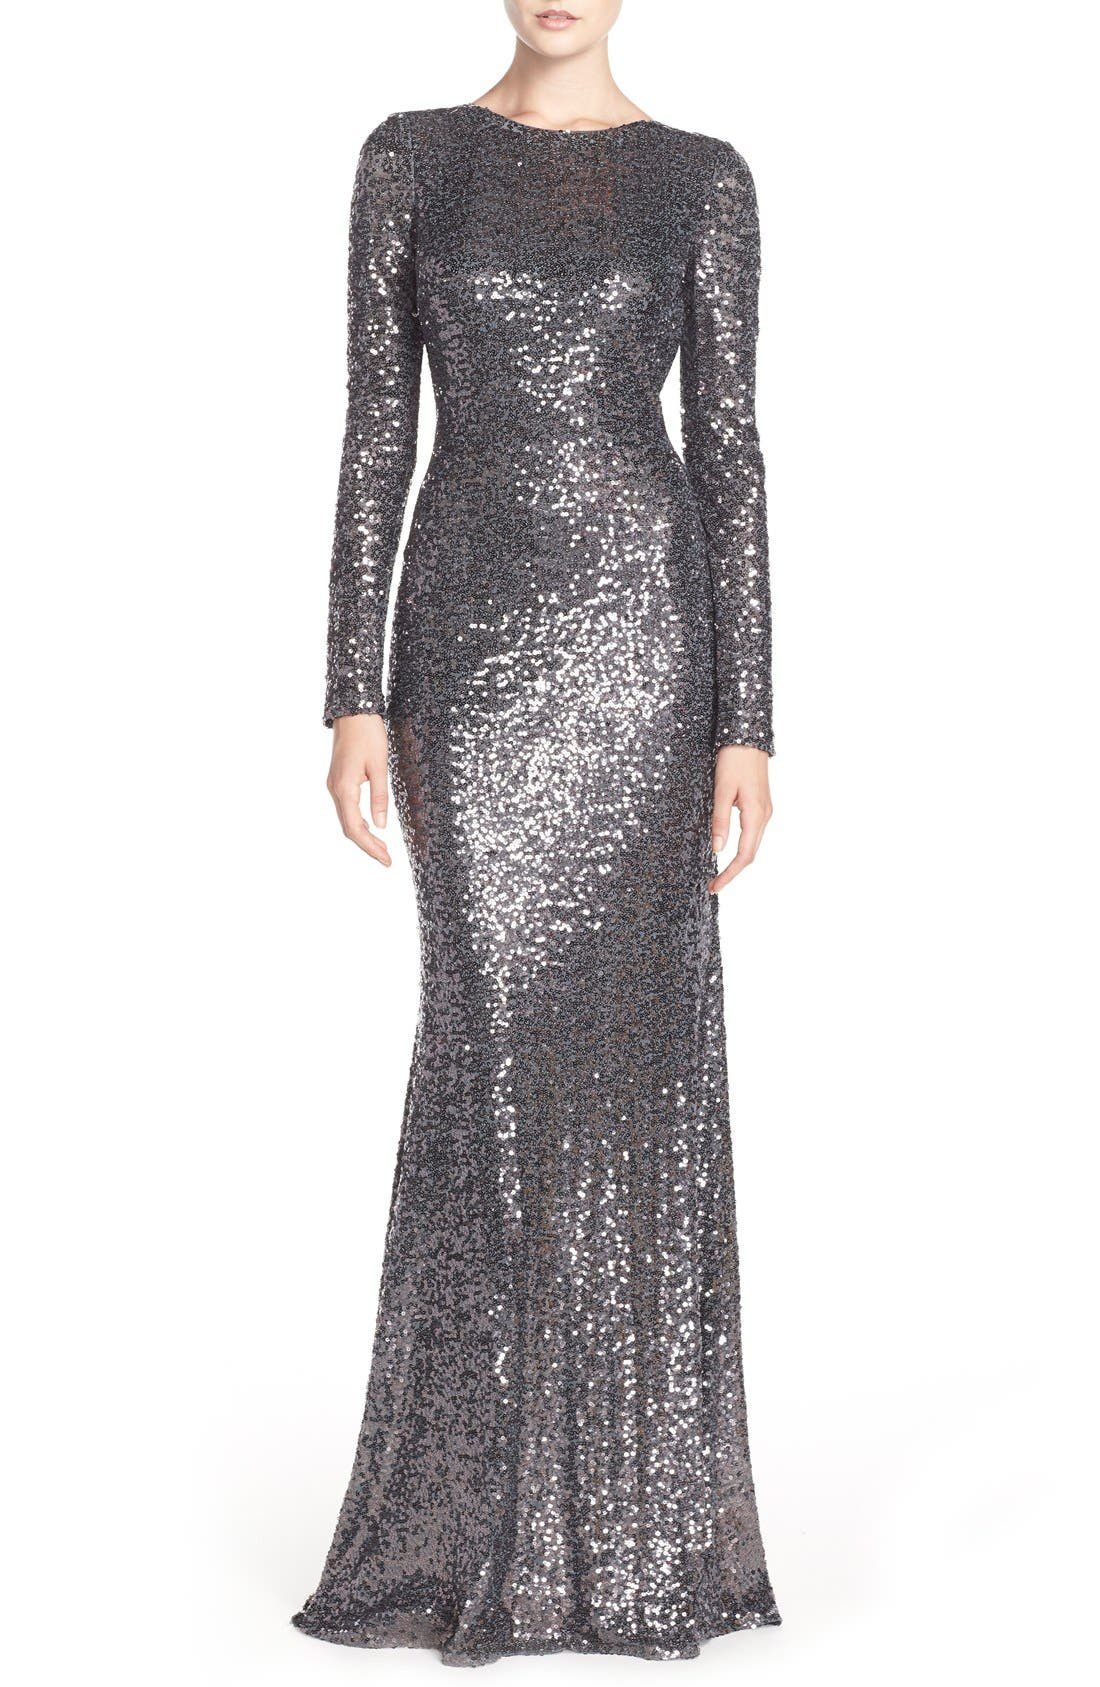 Alternate Image 1 Selected - Badgley Mischka Cowl Back Sequin Gown